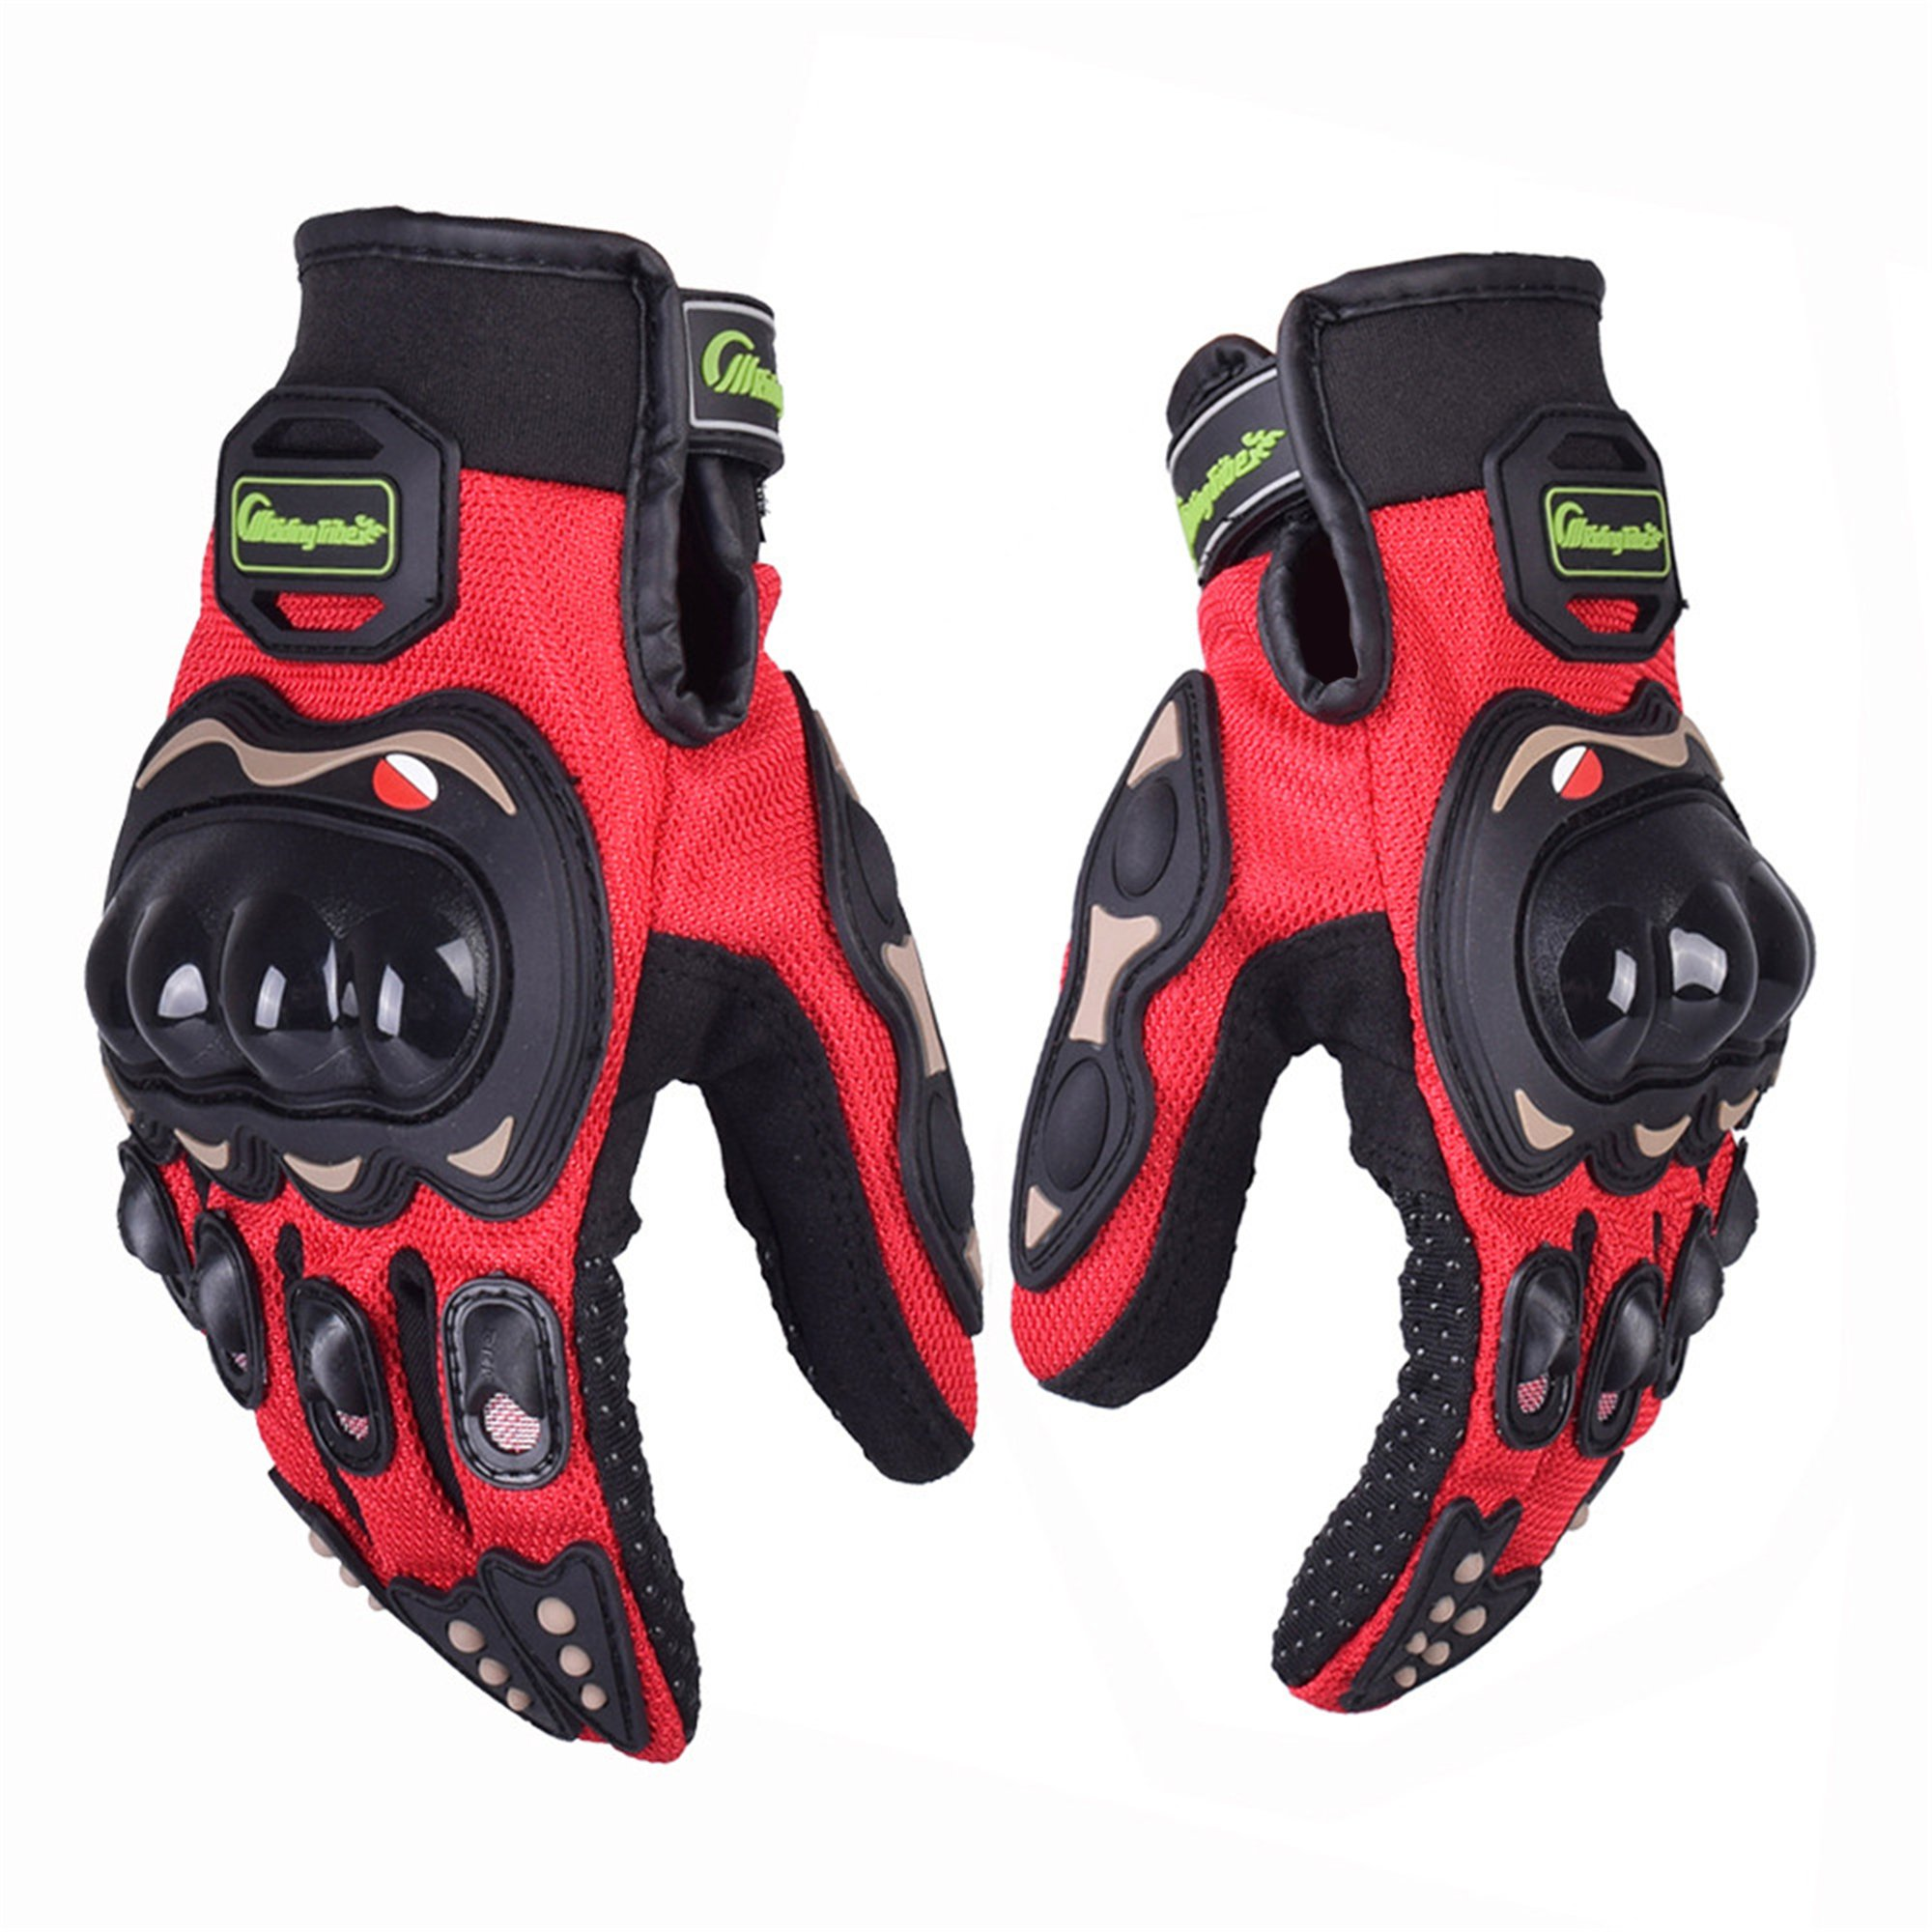 Protective Motorcycle Gloves Powersport Cycling Mountain Bike Men Women Gloves 01G (L, Red)